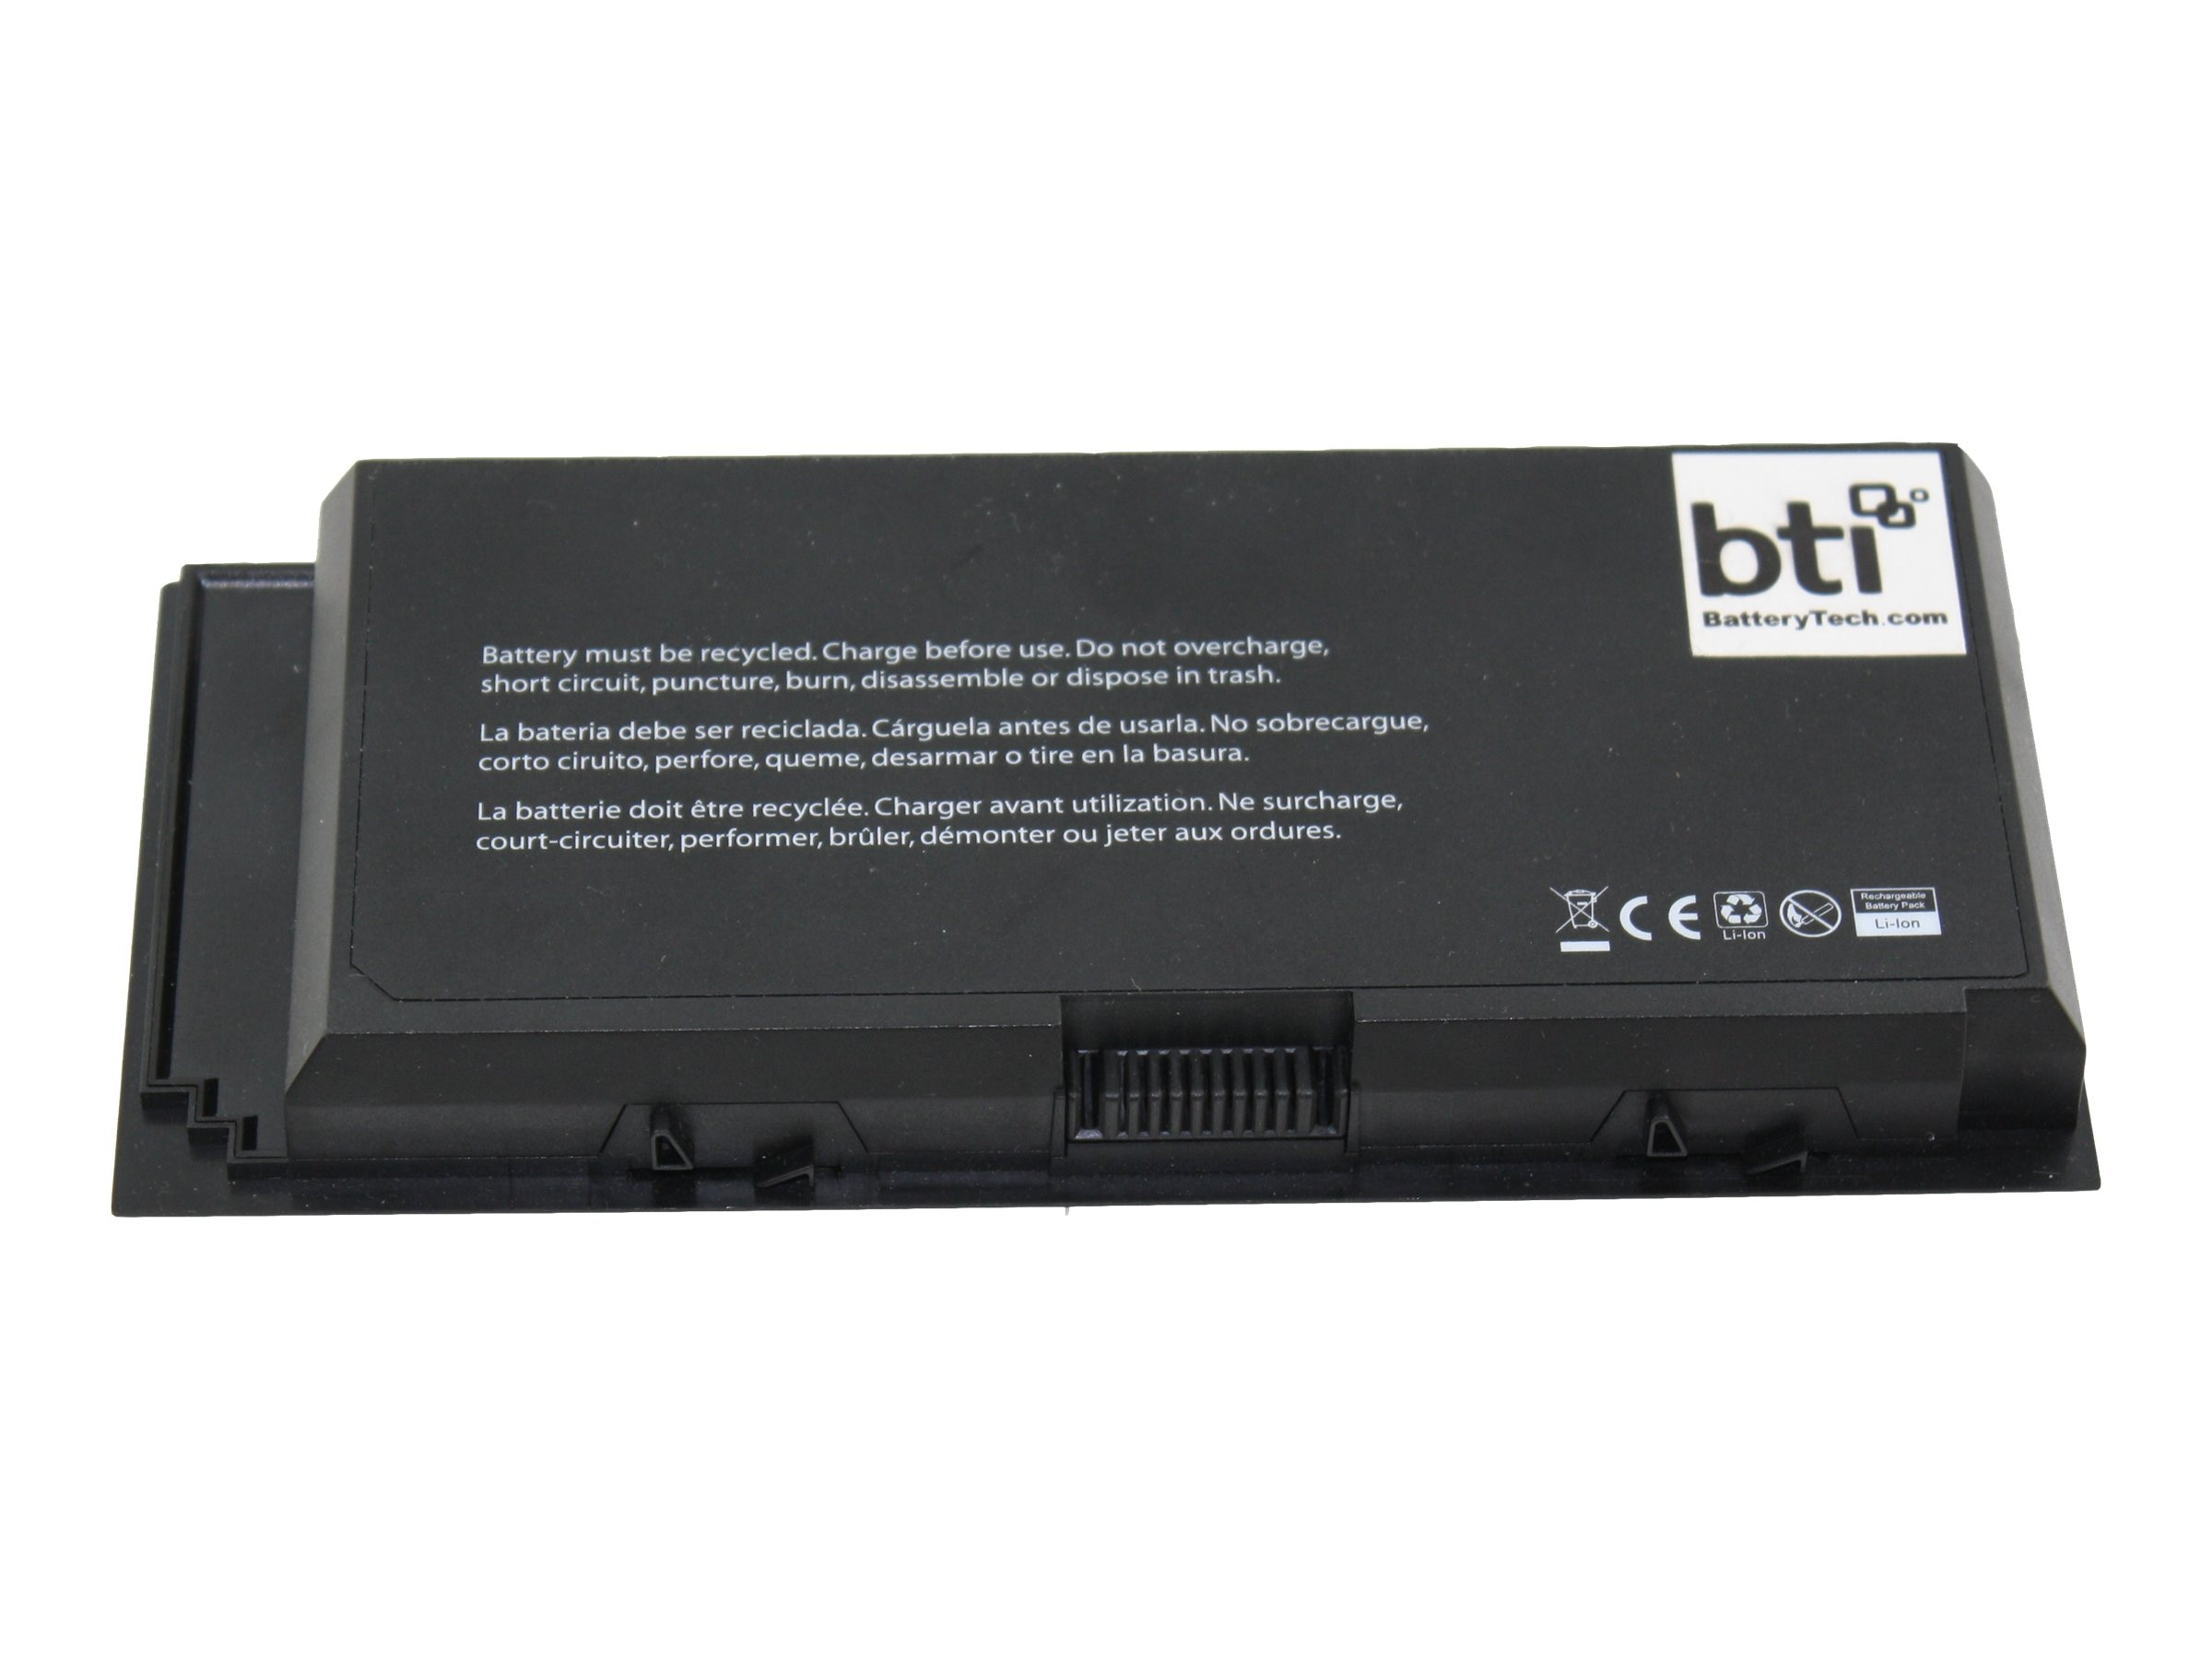 BTI 6-Cell Battery for Dell Precision M4600 312-1177 312-1178 0RTKDH 3DJH7, DL-M4600X6